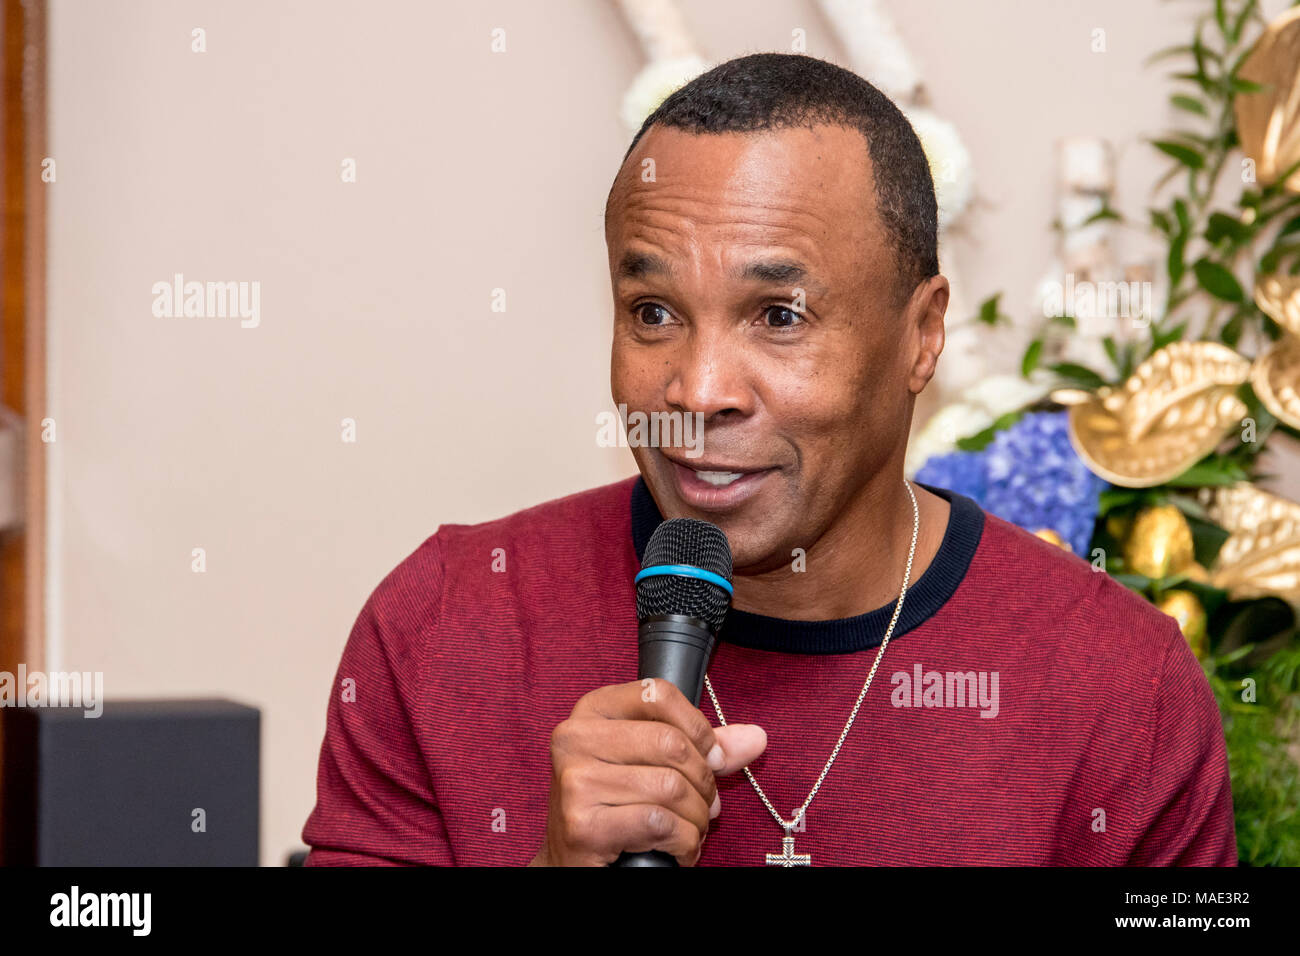 Park House Restaurant, Cardiff, Wales, 31st March 2018: Former boxing legend Sugar Ray Leonard speaks at an event in Cardiff before the Joshua v Parker fight in the principality stadium Credit: Andrew Dowling/Influential Photography/Alamy Live News - Stock Image